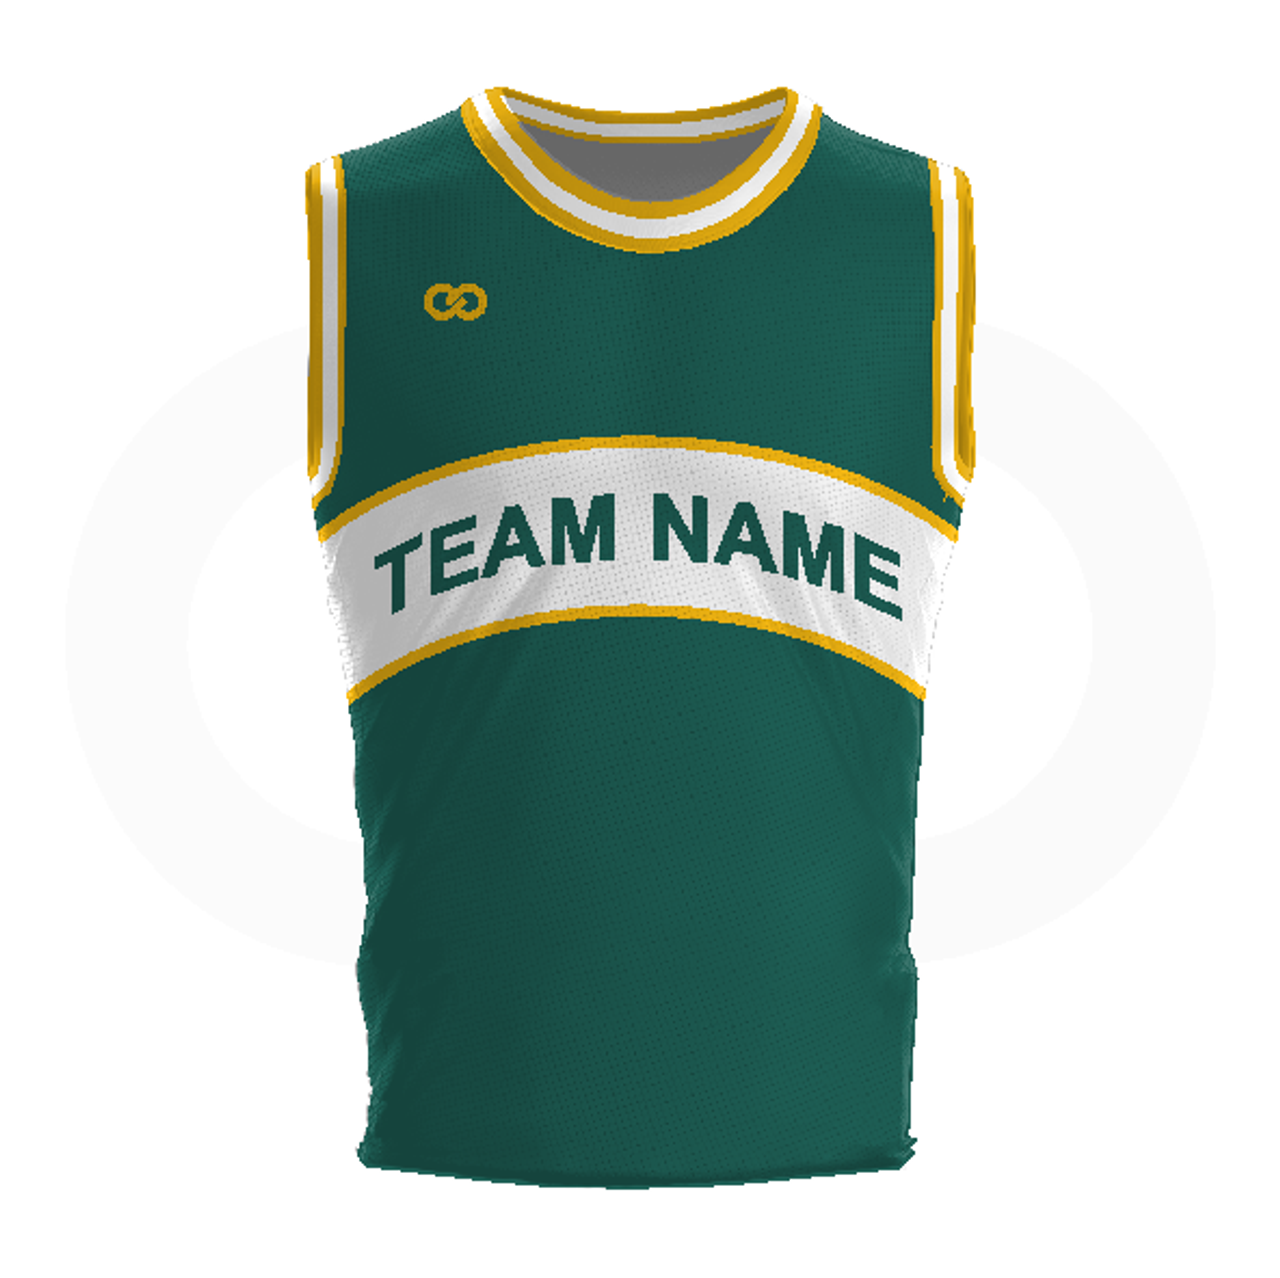 751f01912d6 Sonics - Custom Basketball Jersey - Wooter Apparel